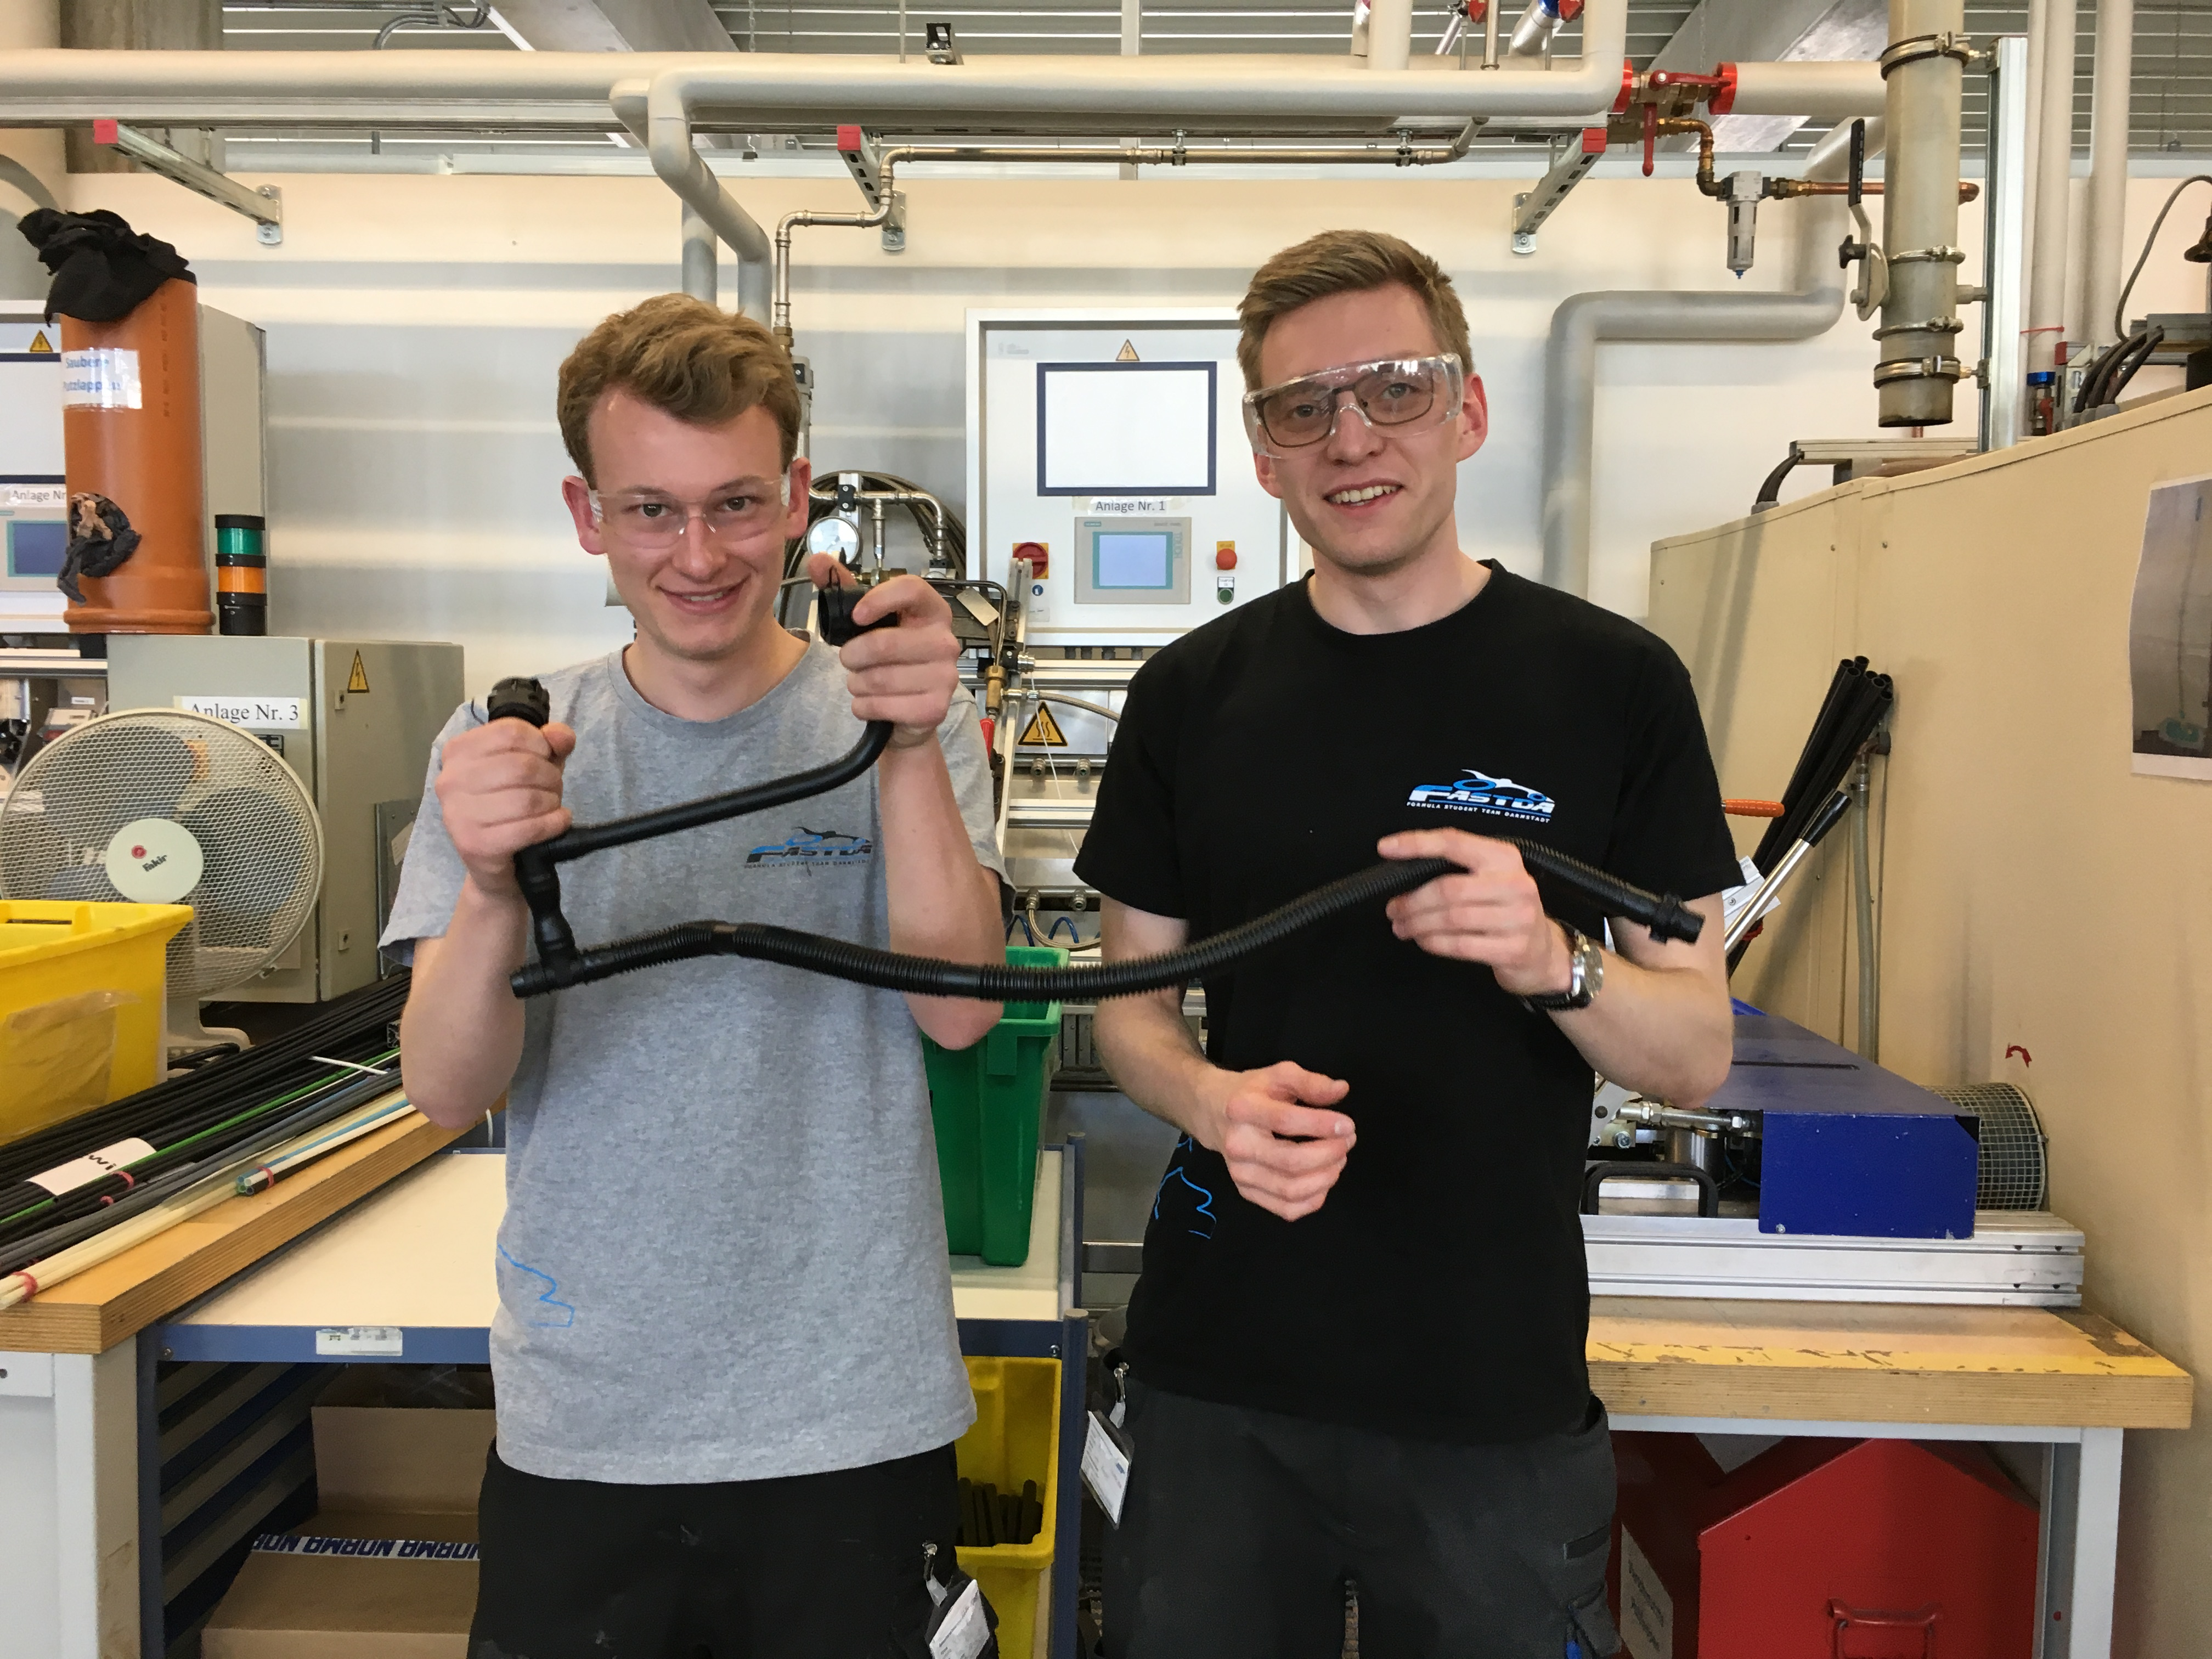 Sven Rühl and Lukas Koenen from the FaSTDa 2019 team at NORMA Group's prototype workshop with part of the cooling line system